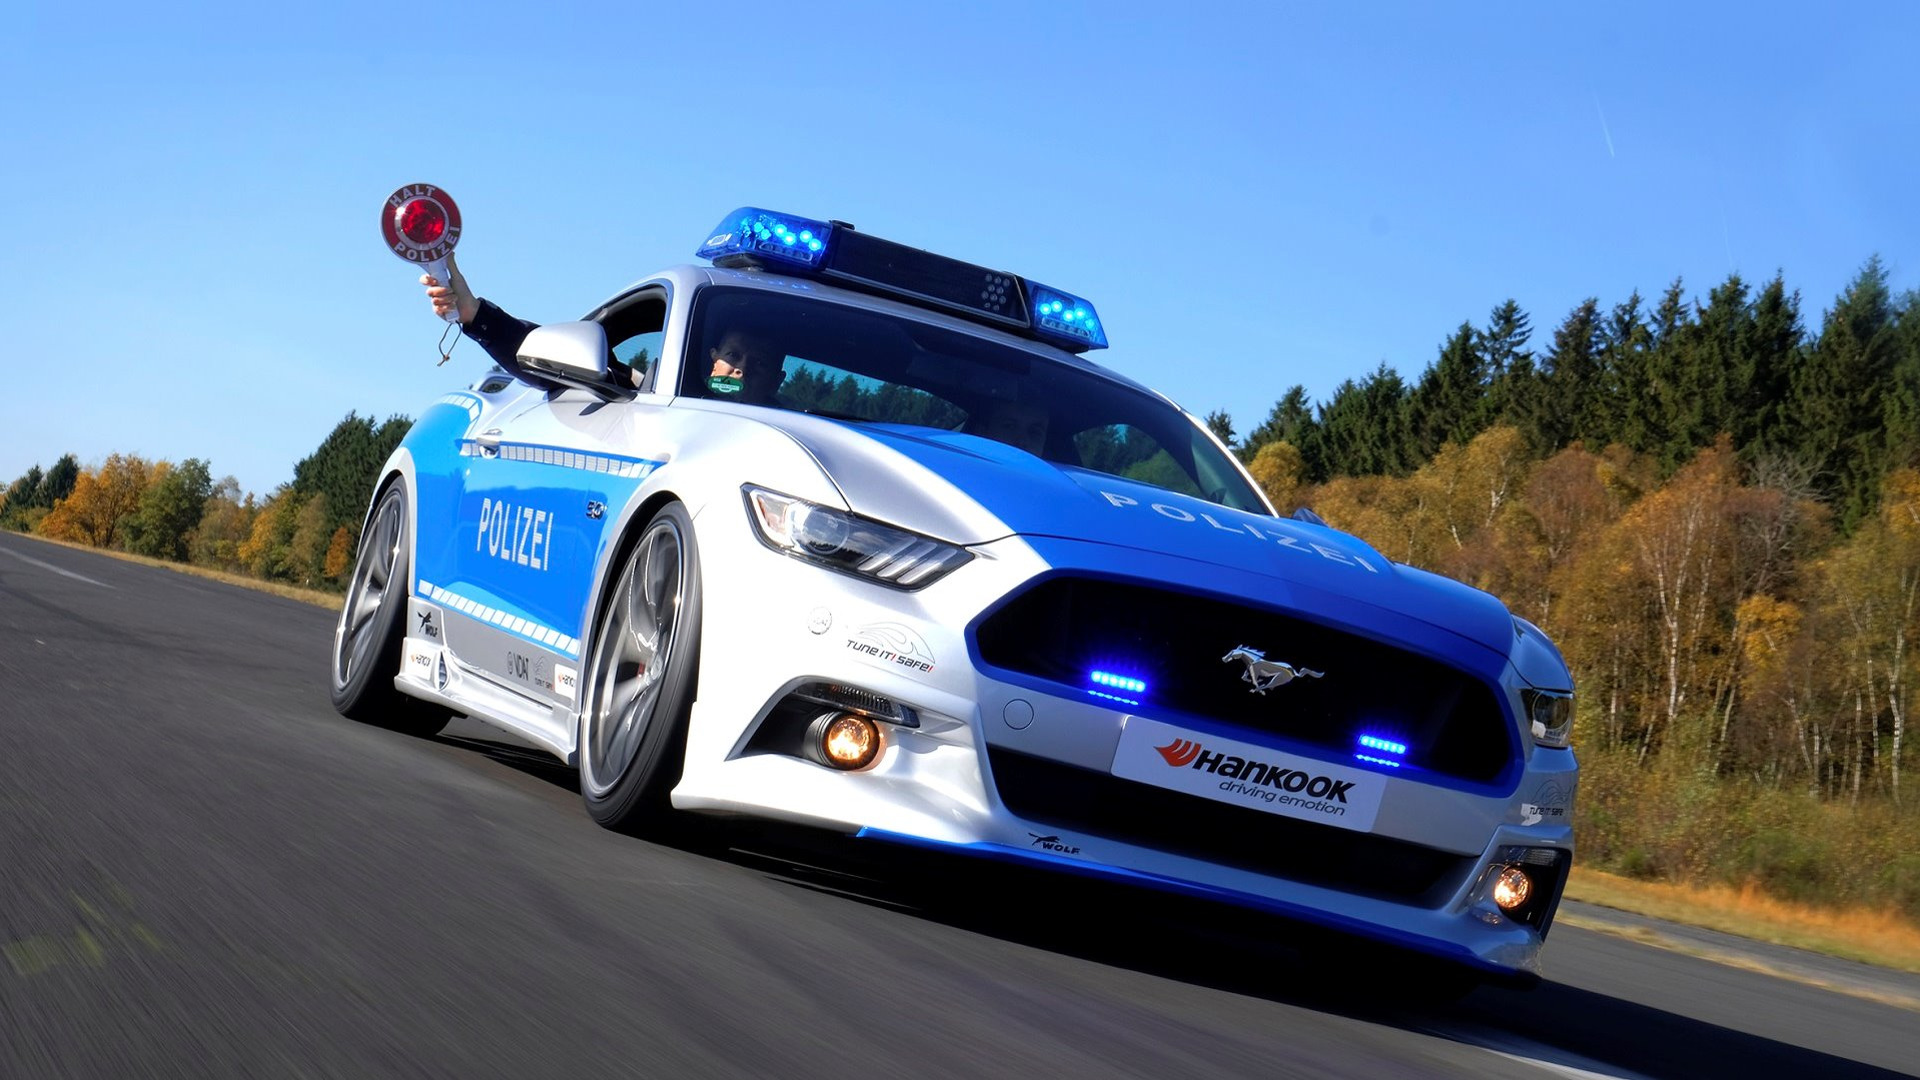 Germany S New Ford Mustang Gt Police Car Looks Rad The Drive